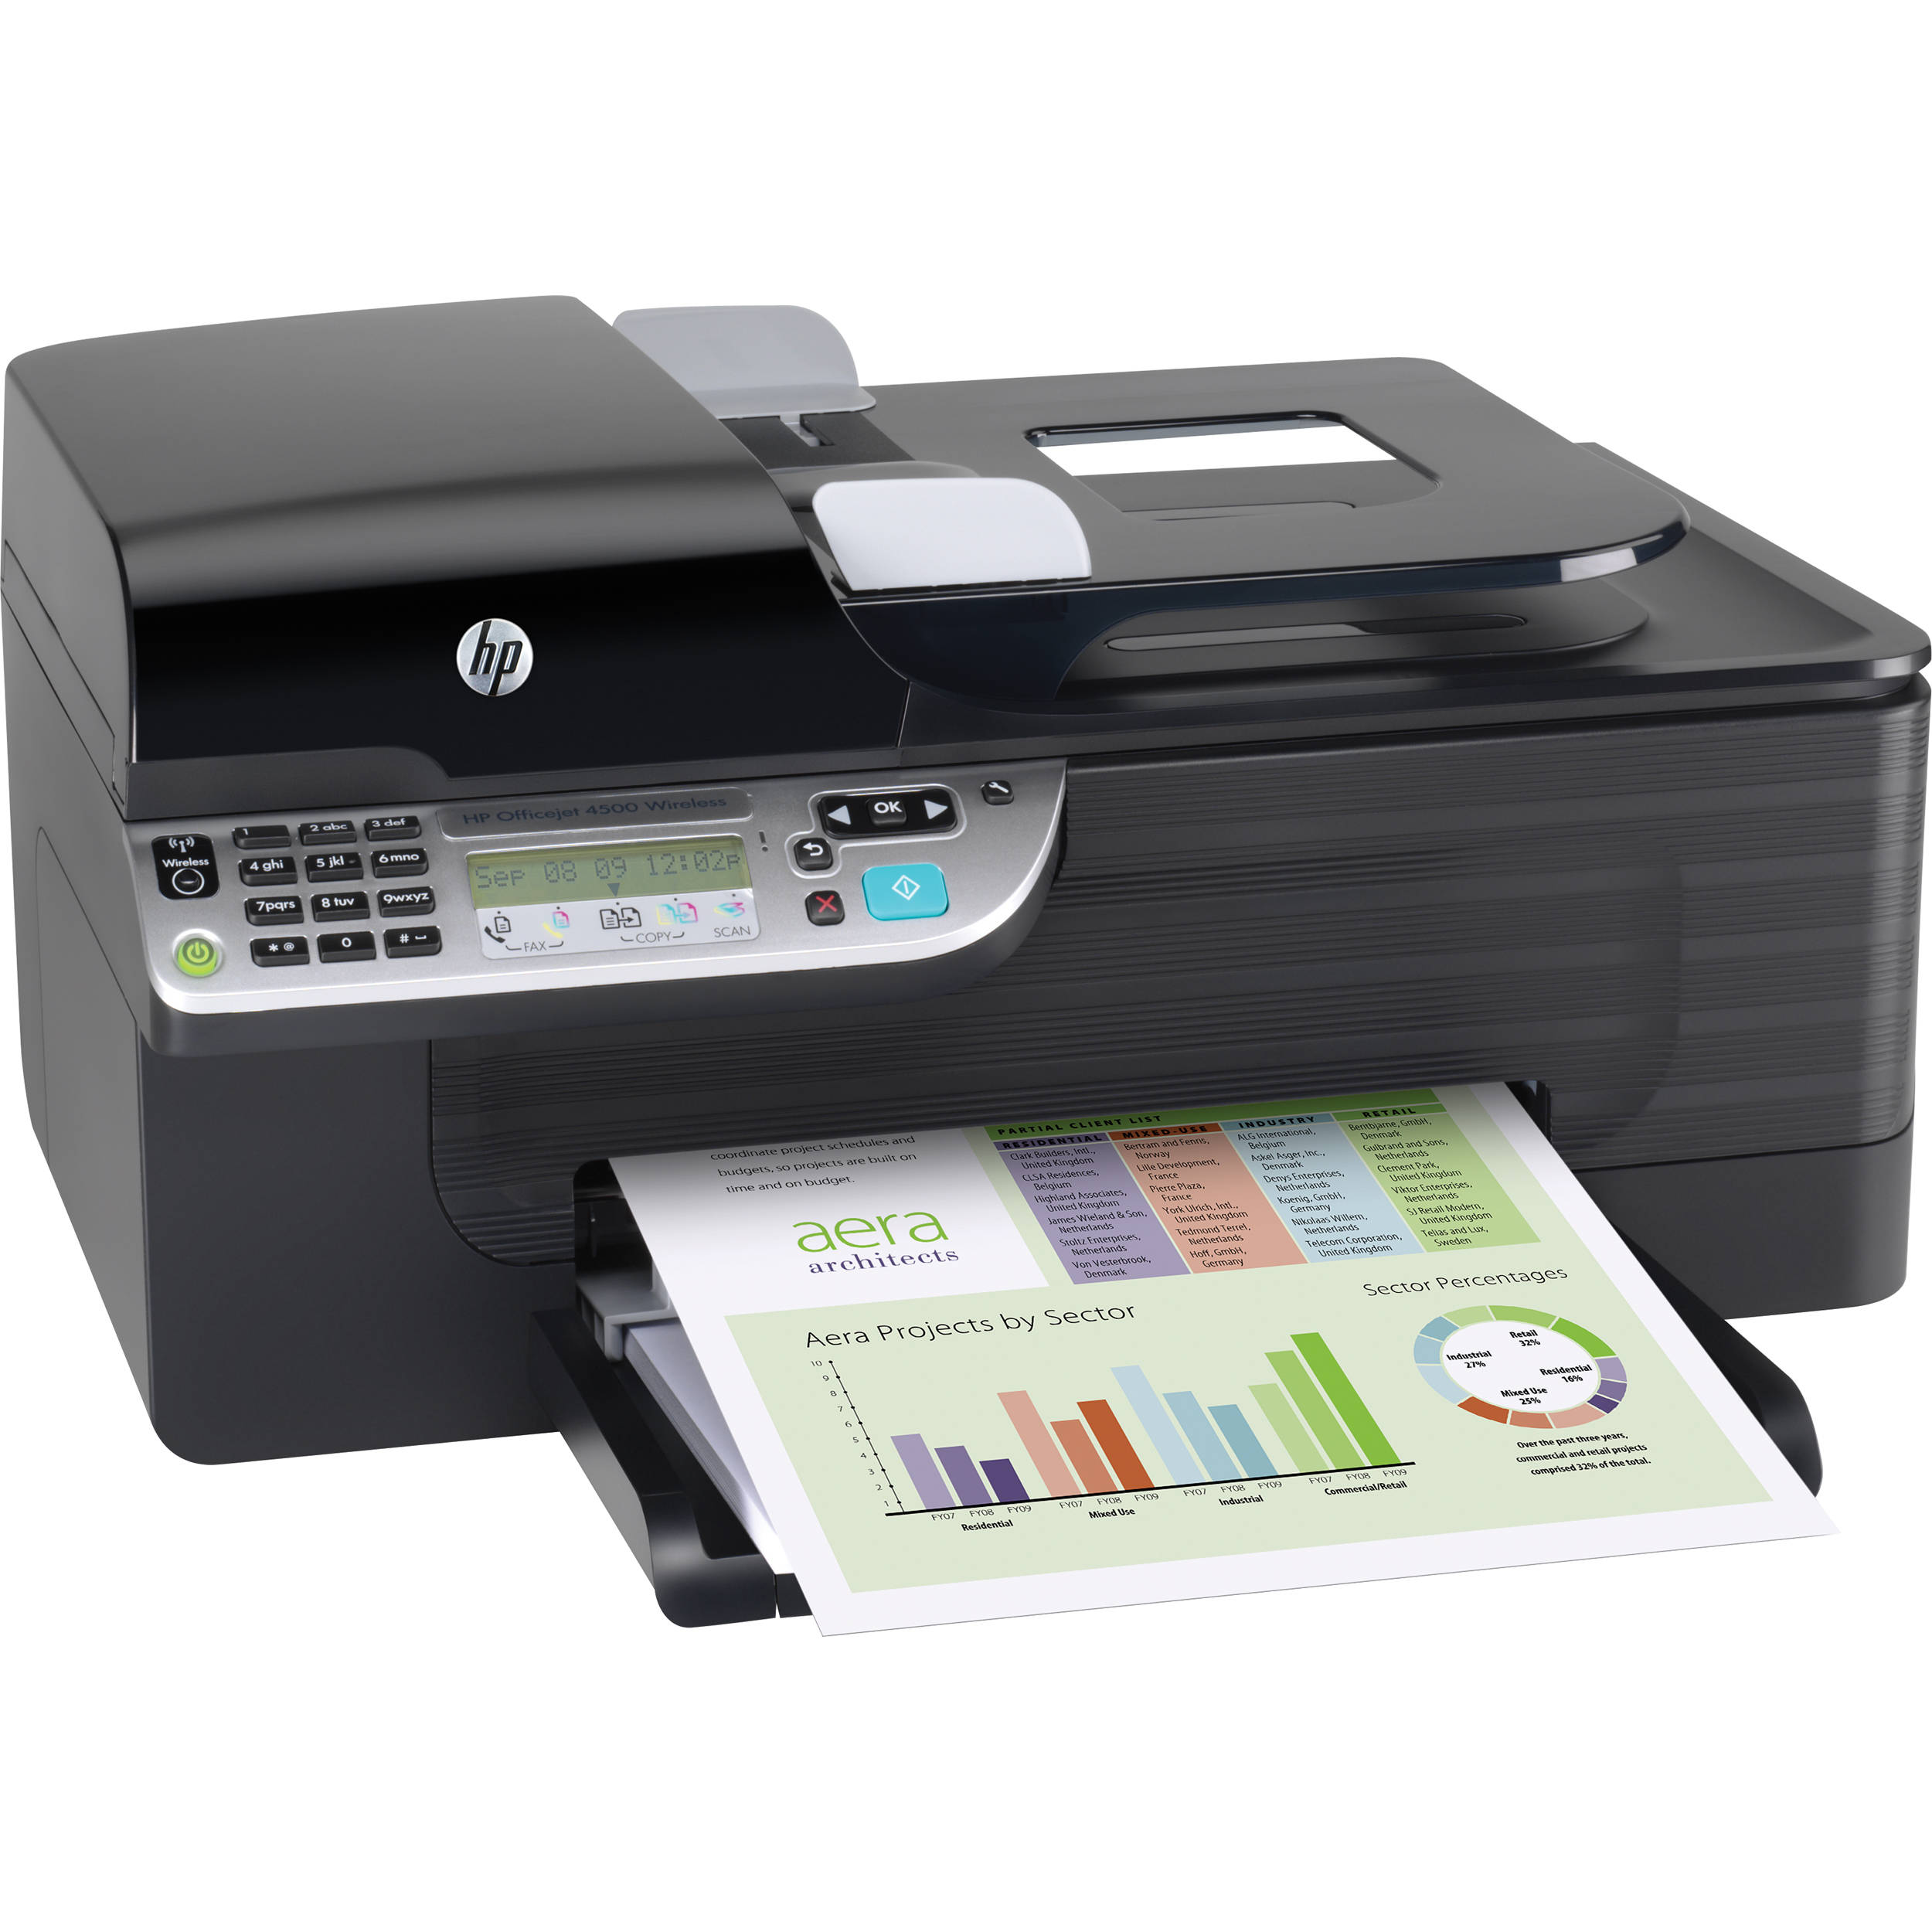 hp cn547a officejet 4500 wireless all in one printer cn547a b1h. Black Bedroom Furniture Sets. Home Design Ideas